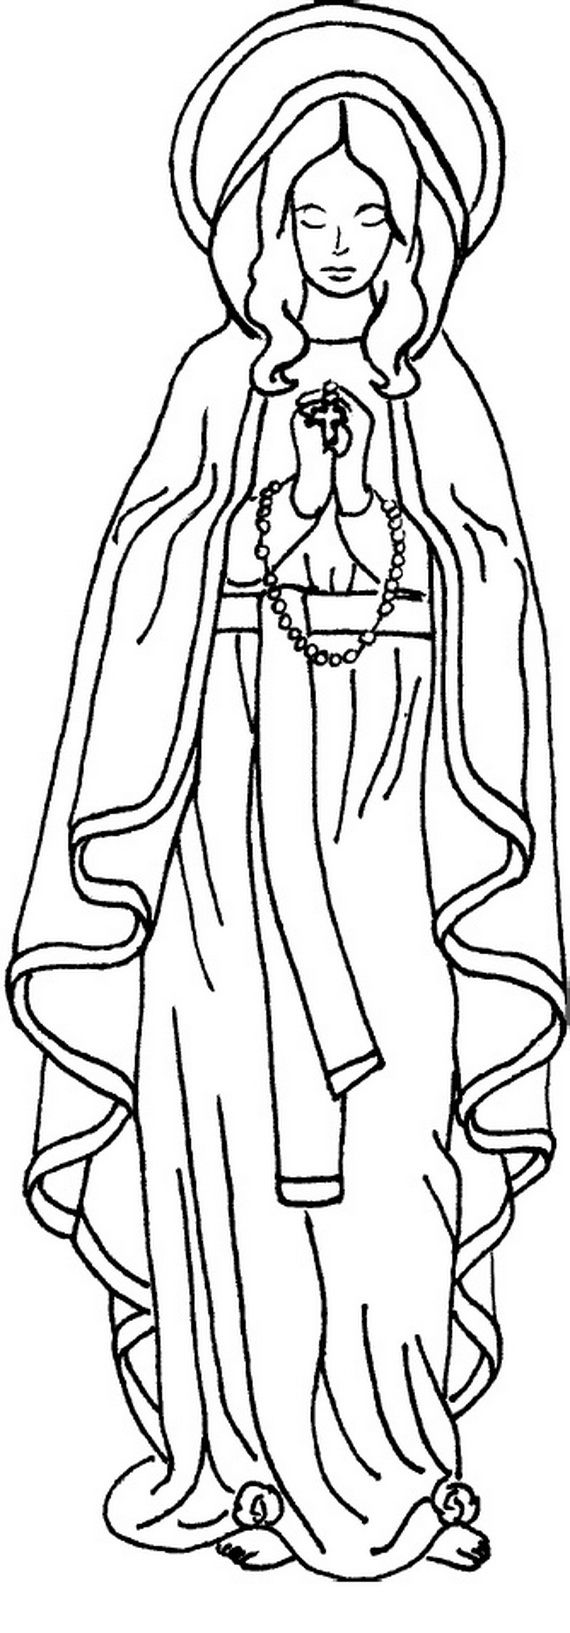 Printable coloring pages virgin mary - Immaculate Conception Coloring Pages _03